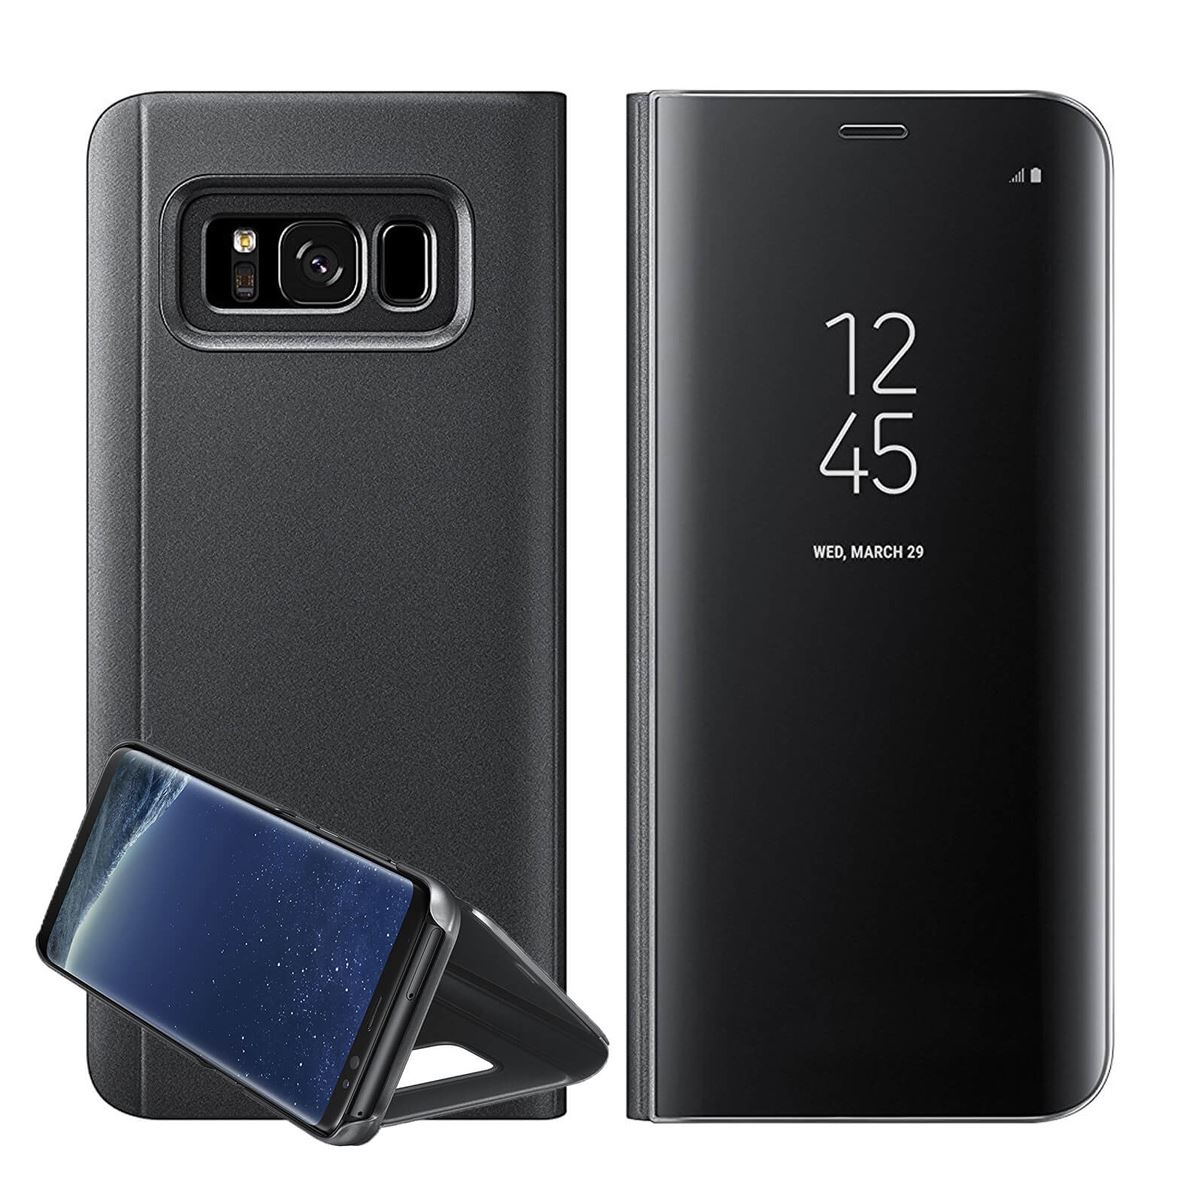 New-Samsung-Galaxy-S10-S9-S8-Smart-View-Mirror-Leather-Flip-Stand-Case-Cover thumbnail 18